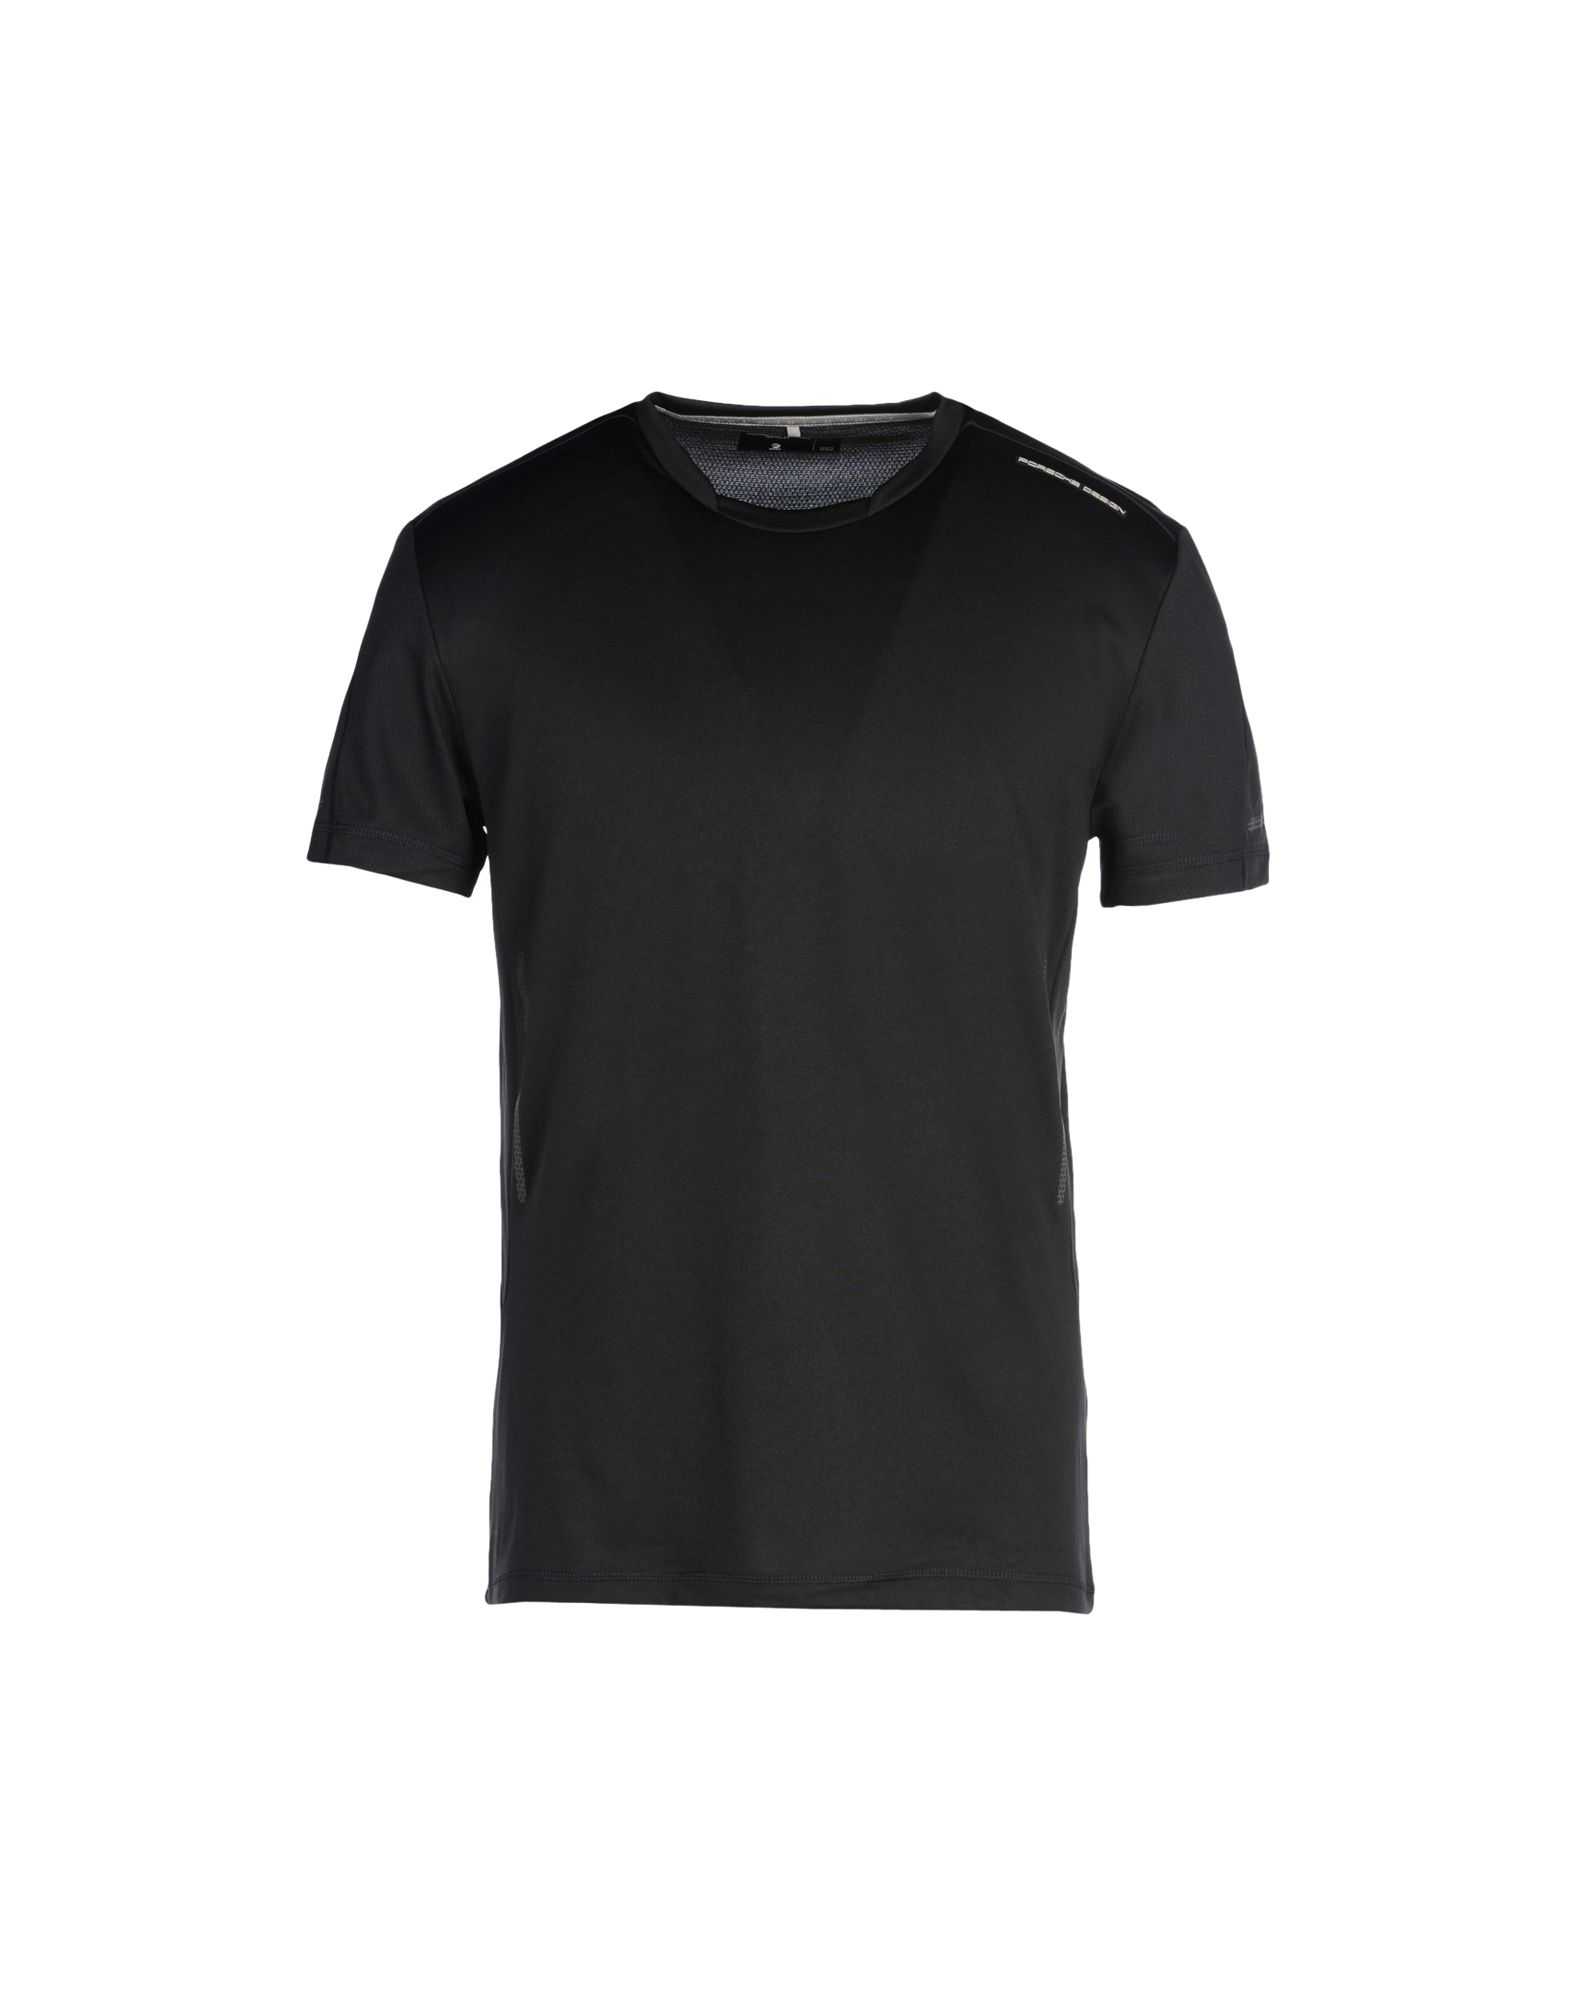 Black t shirt with design - Porsche Design Sport By Adidas Running T Shirt Men Porsche Design Sport By Adidas T Shirts Online On Yoox United States 37759057vw